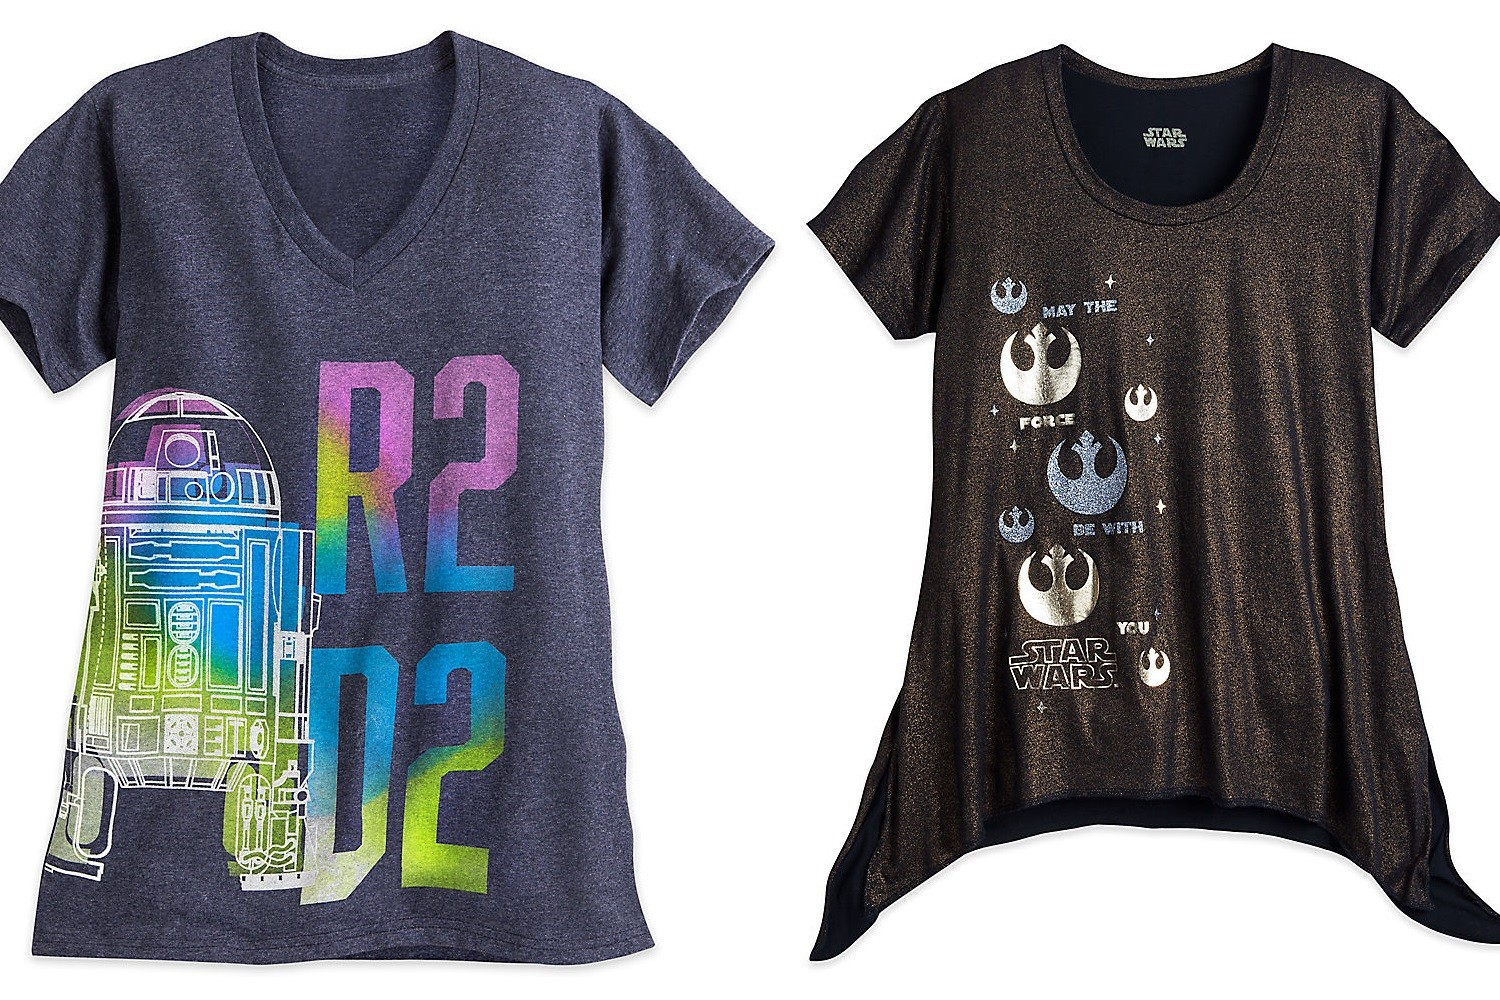 New women's Star Wars tops at the Disney Store